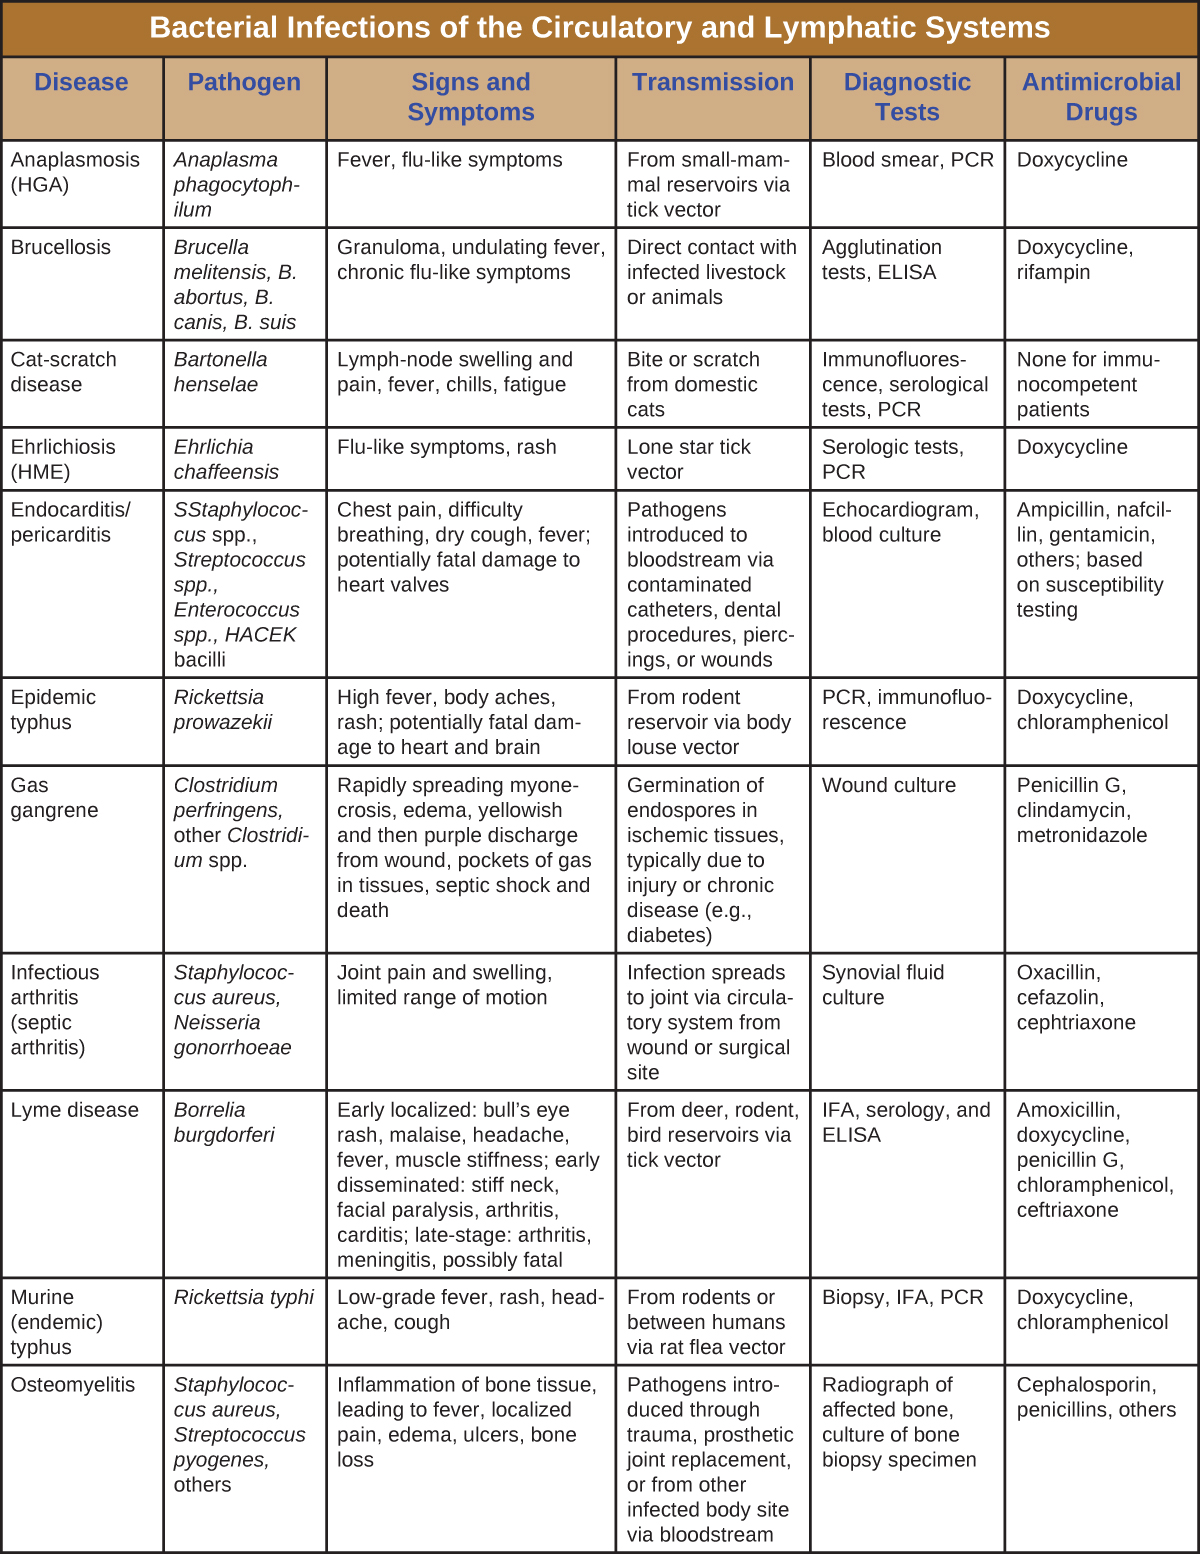 Table titled: Bacterial Infections of the Circulatory and Lymphatic Systems. Columns: Disease, Pathogen, Signs and Symptoms, Transmission, Diagnostic Tests, Antimicrobial Drugs. Anaplasmosis (HGA); Anaplasma phagocytophilum; Fever, flu-like symptoms; From small-mammal reservoirs via tick vector; Blood smear, PCR; Doxycycline. Brucellosis; Brucella melitensis, B. abortus, B. canis, B. suis; Granuloma, undulating fever, chronic flu-like symptoms; Direct contact with infected livestock or animals; Agglutination tests, ELISA; Doxycycline, rifampin. Cat-scratch disease; Bartonella henselae; Lymph-node swelling and pain, fever, chills, fatigue; Bite or scratch from domestic cats; Immunofluorescence, serological tests, PCR; None for immunocompetent patients. Ehrlichiosis (HME); Ehrlichia chaffeensis;Flu-like symptoms, rash; Lone star tick vector; Serologic tests, PCR; Doxycycline. Endocarditis/pericarditis; Staphylococcus spp., Streptococcus spp., Enterococcus spp., HACEK bacilli; Chest pain, difficulty breathing, dry cough, fever; potentially fatal damage to heart valves; Pathogens introduced to bloodstream via contaminated catheters, dental procedures, piercings, or wounds; Echocardiogram, blood culture; Ampicillin, nafcillin, gentamicin, others; based on susceptibility testing. Epidemic typhus; Rickettsia prowazekii; High fever, body aches, rash; potentially fatal damage to heart and brain; From rodent reservoir via body louse vector; PCR, immunofluorescence; Doxycycline, chloramphenicol. Gas gangrene; Clostridium perfringens, other Clostridium spp.; Rapidly spreading myonecrosis, edema, yellowish and then purple discharge from wound, pockets of gas in tissues, septic shock and death; Germination of endospores in ischemic tissues, typically due to injury or chronic disease (e.g., diabetes); Wound culture; Penicillin G, clindamycin, metronidazole. Infectious arthritis (septic arthritis); Staphylococcus aureus, Neisseria gonorrhoeae; Joint pain and swelling, limited range of motion; Infection spreads to joint via circulatory system from wound or surgical site; Synovial fluid culture; Oxacillin, cefazolin, cephtriaxone. Lyme disease; Borrelia burgdorferi; Early localized: bull's eye rash, malaise, headache, fever, muscle stiffness; early disseminated: stiff neck, facial paralysis, arthritis, carditis; late-stage: arthritis, meningitis, possibly fatal; From deer, rodent, bird reservoirs via tick vector; IFA, serology, and ELISA; Amoxicillin, doxycycline, penicillin G, chloramphenicol, ceftriaxone. Murine (endemic) typhus; Rickettsia typhi; Low-grade fever, rash, headache, cough; From rodents or between humans via rat flea vector; Biopsy, IFA, PCR; Doxycycline, chloramphenicol. Osteomyelitis; Staphylococcus aureus, Streptococcus pyogenes, others; Inflammation of bone tissue, leading to fever, localized pain, edema, ulcers, bone loss; Pathogens introduced through trauma, prosthetic joint replacement, or from other infected body site via bloodstream; Radiograph of affected bone, culture of bone biopsy specimen; Cephalosporin, penicillins, others.